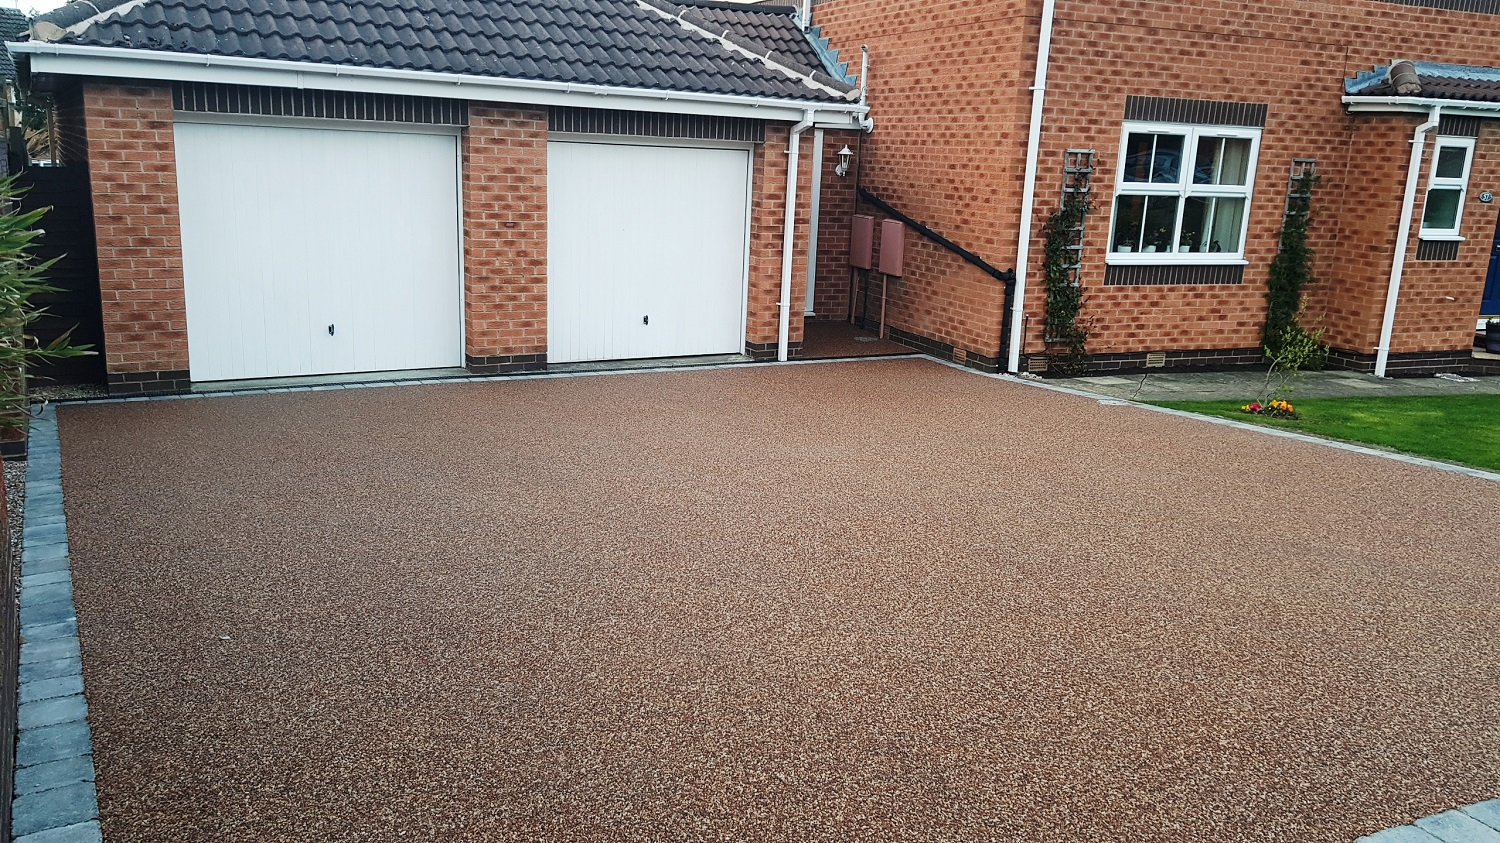 R6 - Chilli Chocolate Mix (1)  Resin Bound Driveway Surfacing at Walton in Chesterfield with Granite